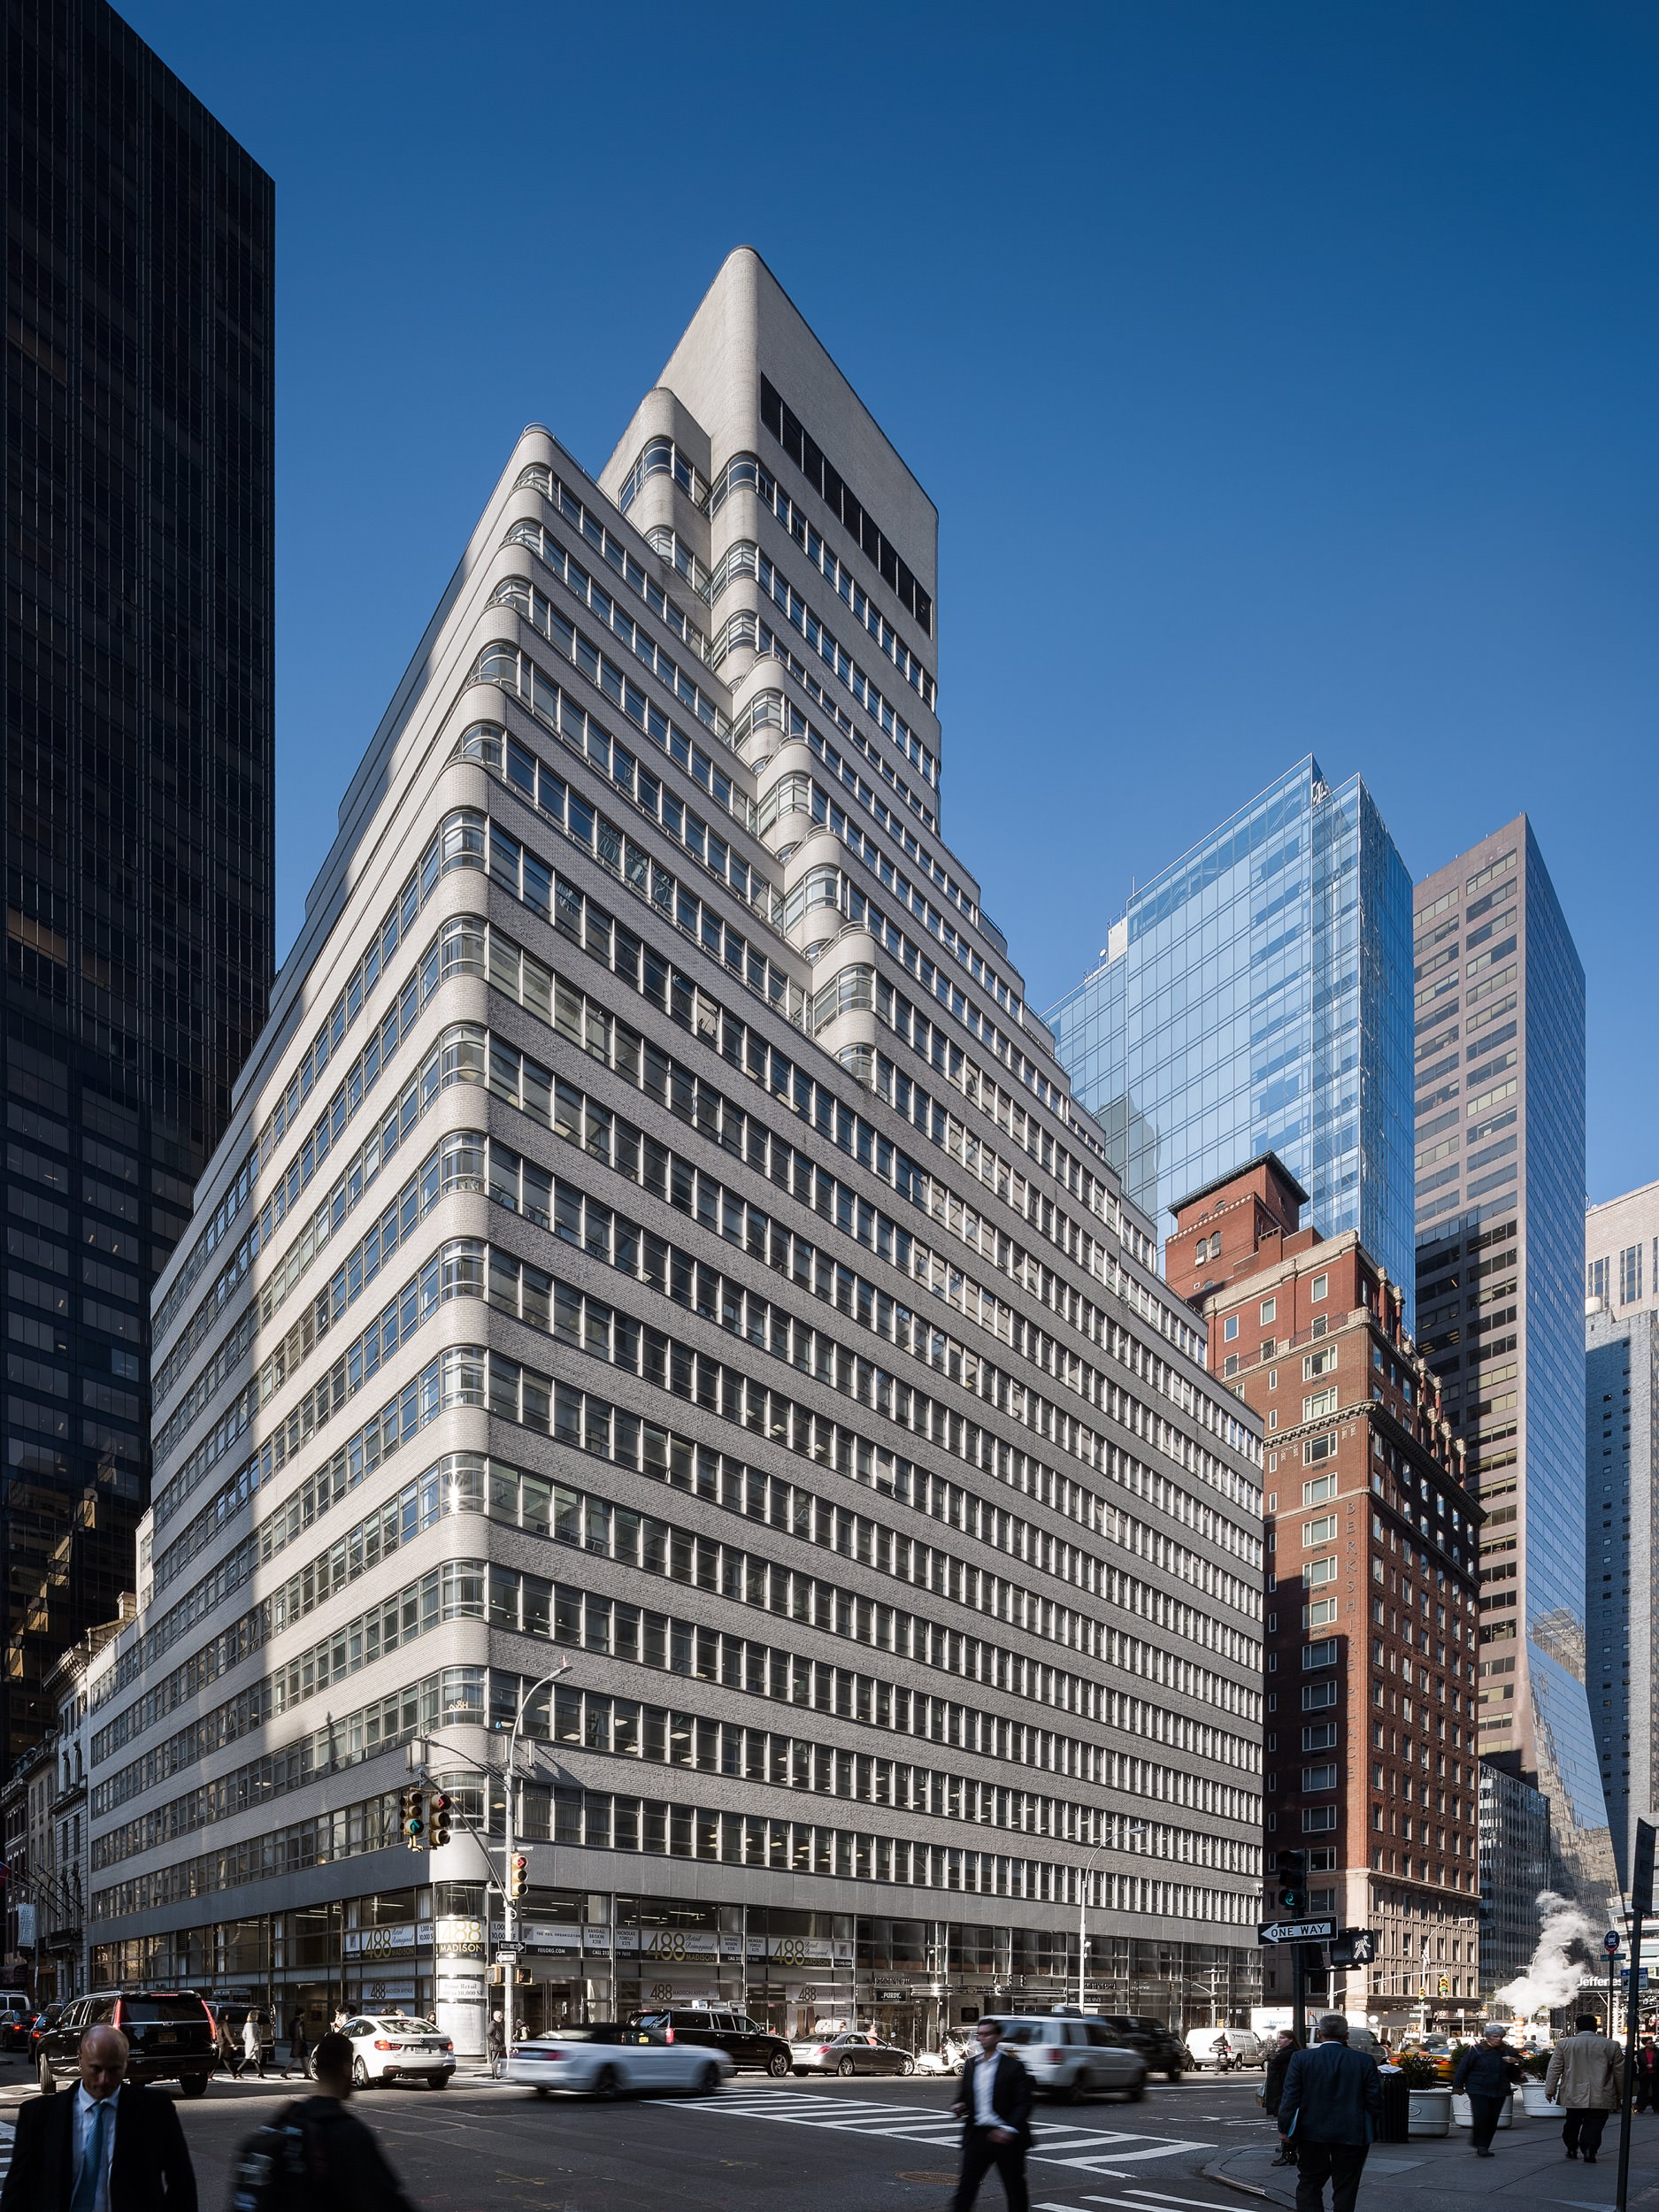 488 Madison Ave, New York -- Formerly (historically): The Look Building